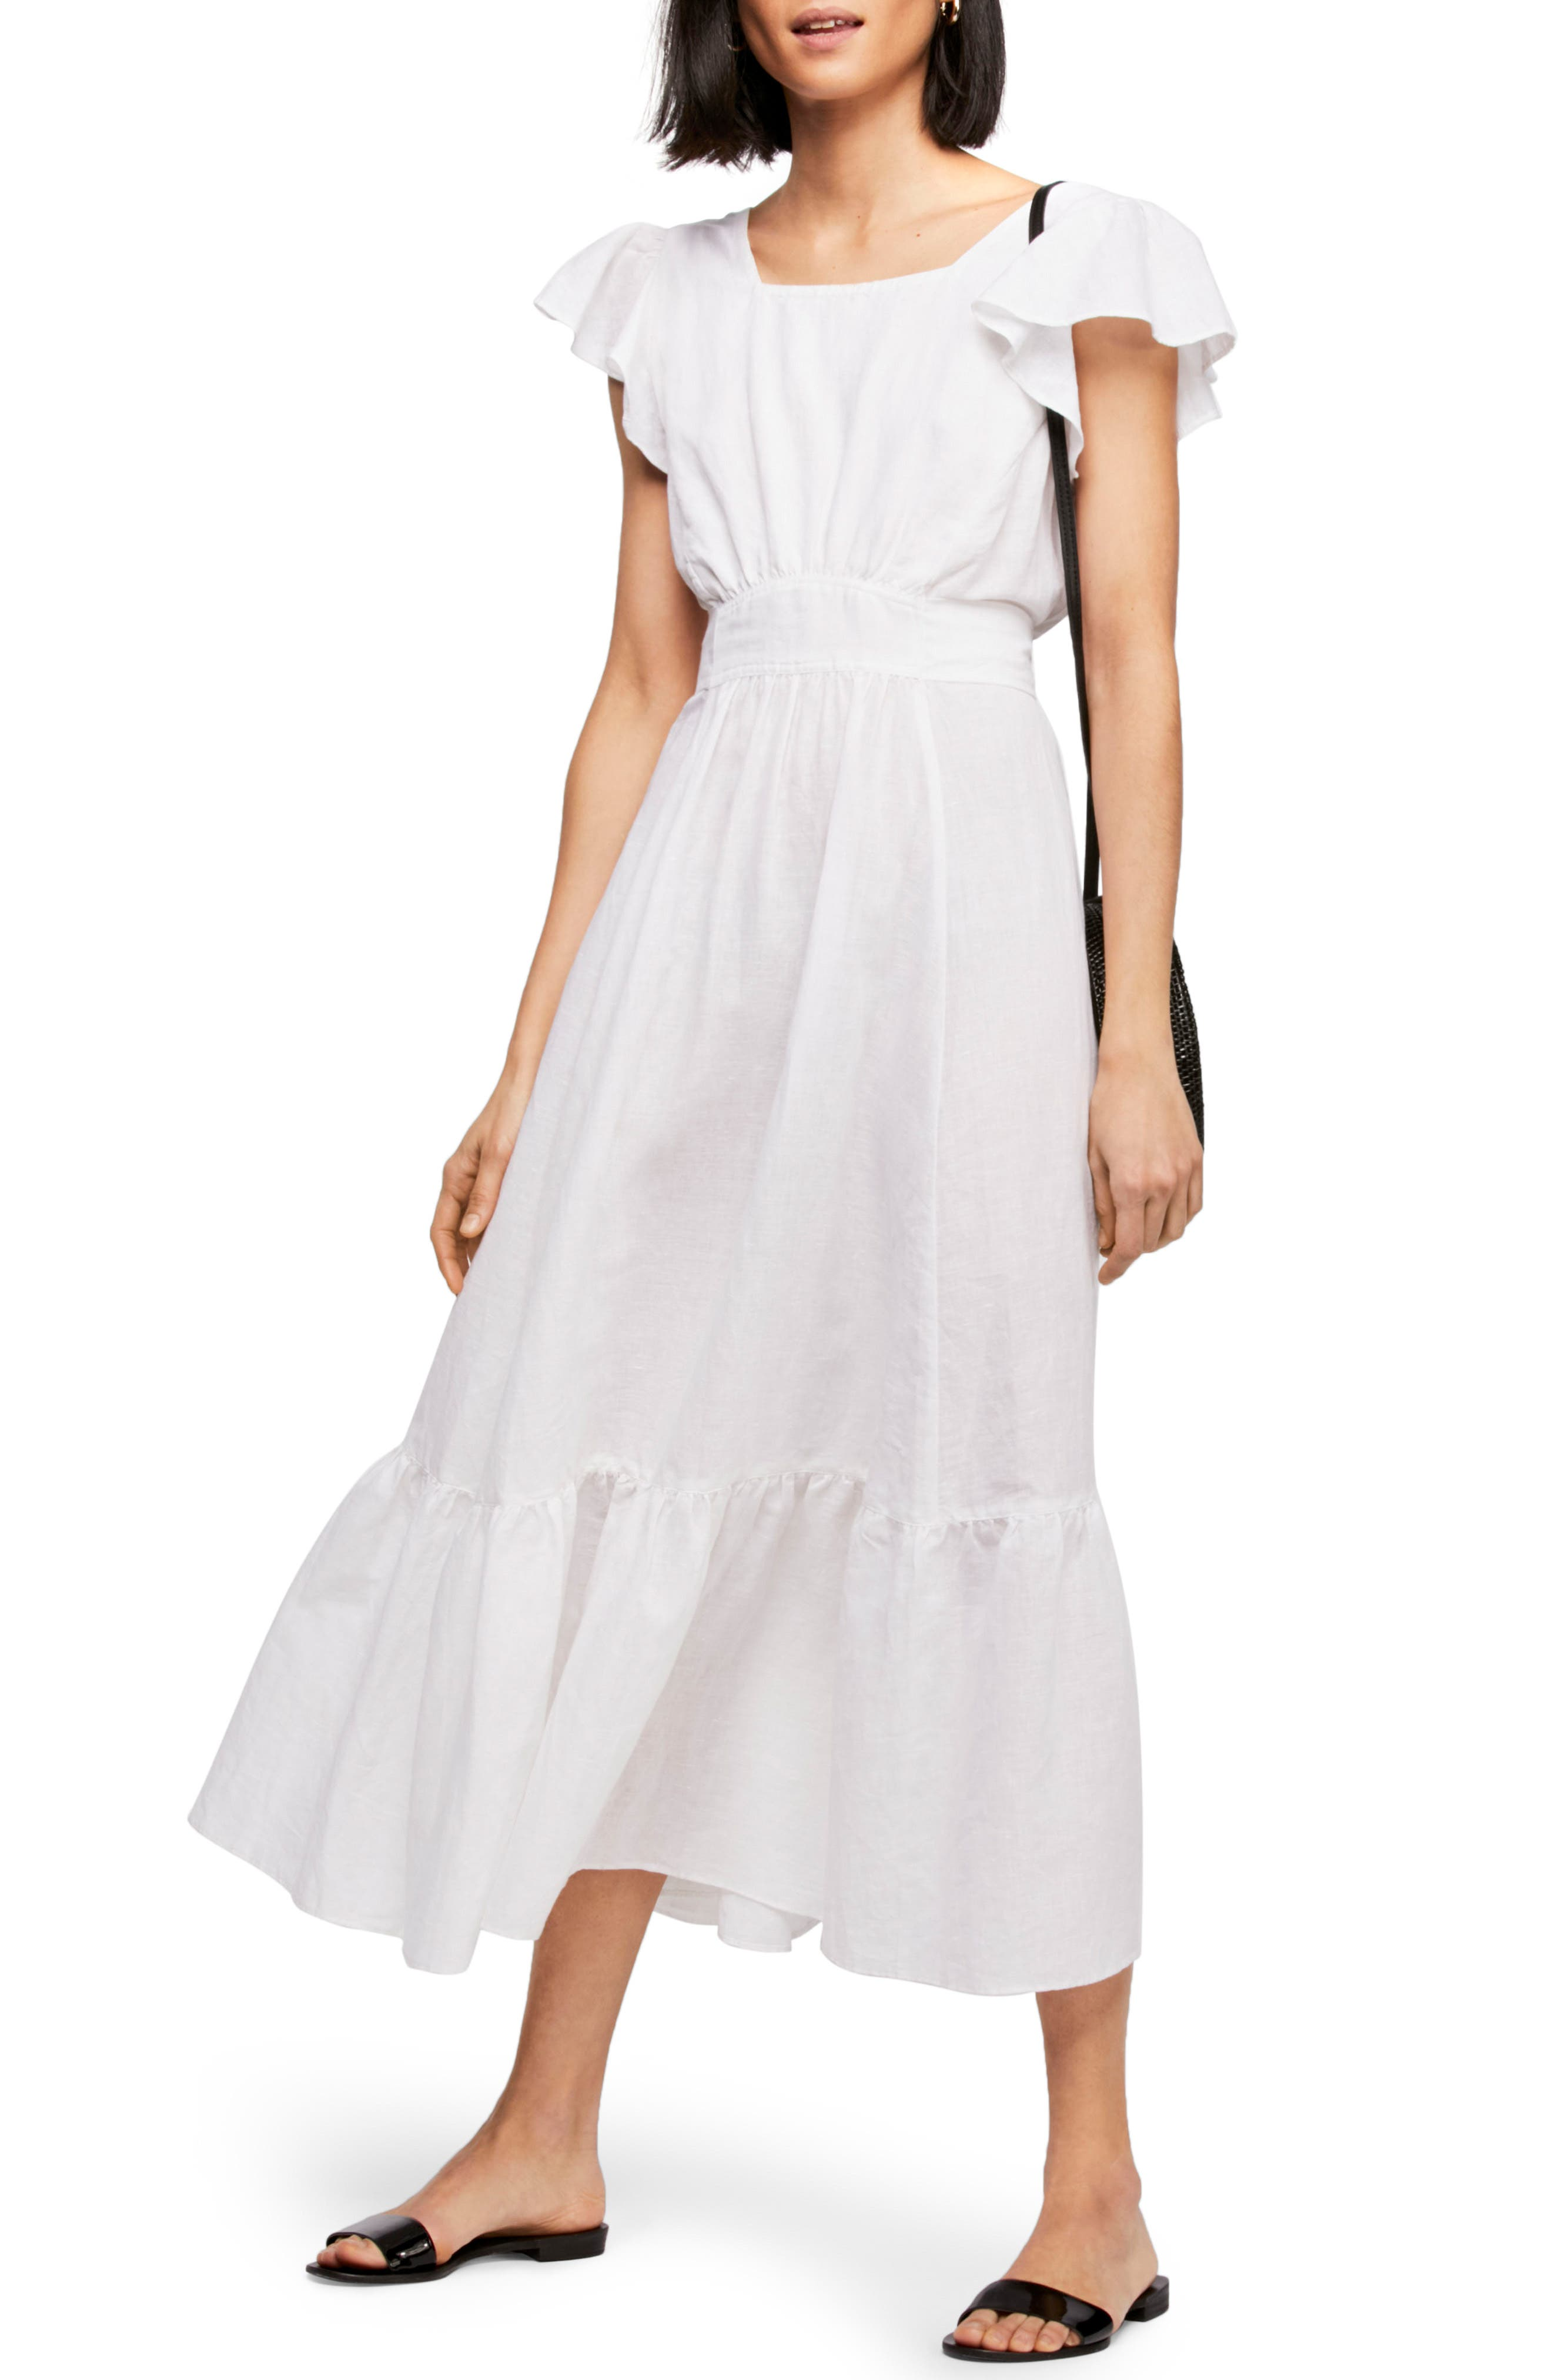 FREE PEOPLE,                             Endless Summer by Free People Takin' a Chance Midi Dress,                             Main thumbnail 1, color,                             100